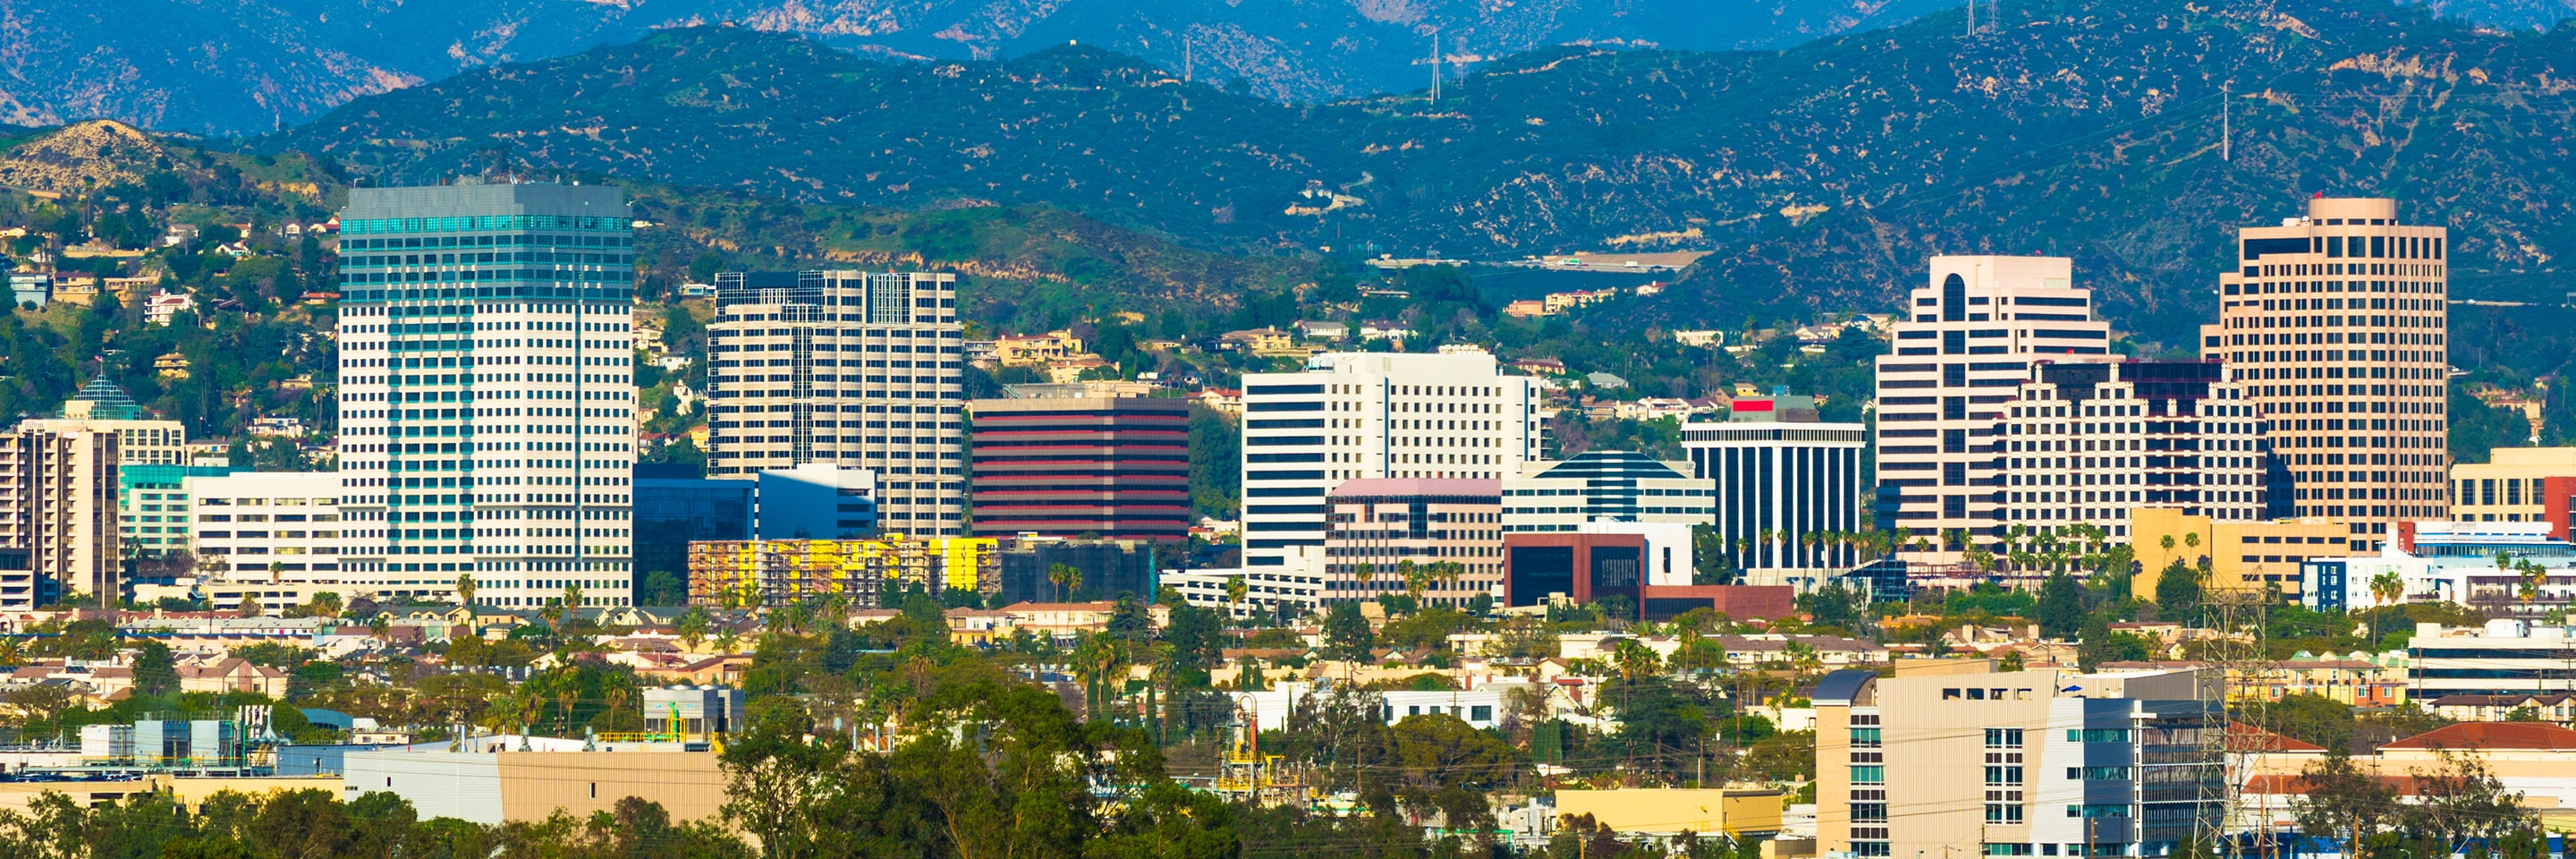 Hotels in Glendale